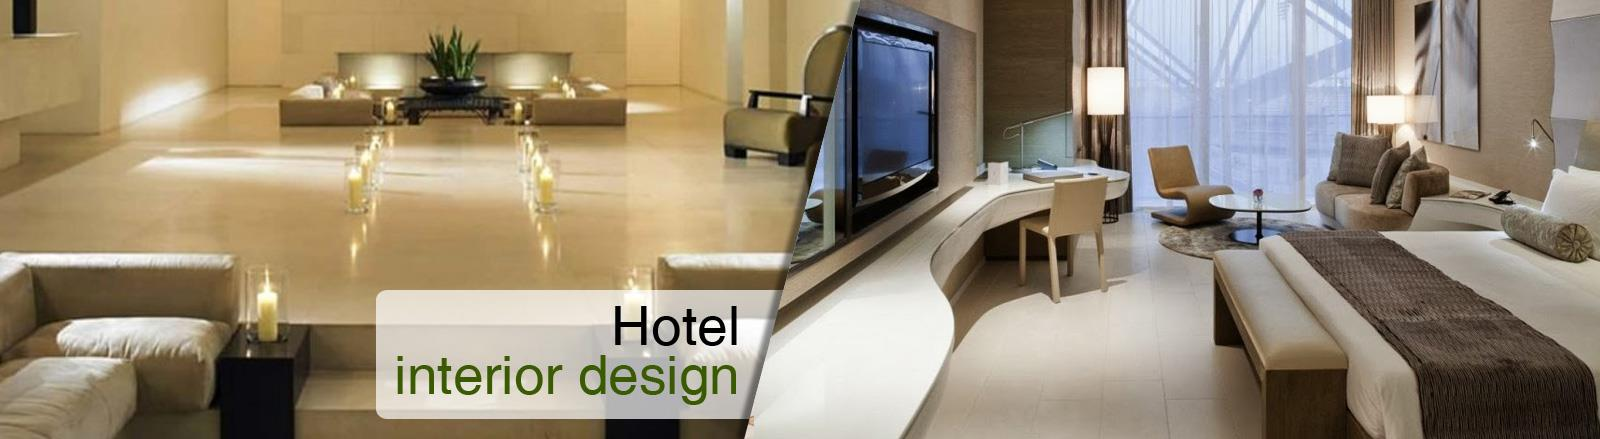 Interior Designing is a refined art of Creativity practised only by The Best Interior Designers. A Healthy Interior of Your Premises Promises much more than what is visible to our naked eyes. For More Information www.theinteria.com Modern Office Designer in Gurgaon Corporate Interior Designing in Gurgaon Commercial Interior Designer in Gurgaon Interior Designer in Gurgaon Best Home & Office interior designer in gurgaon Complete Corporate Interior Design Company in Delhi Ncr Interior designers, decorators, design companies in Gurgaon Corporate Interior Designers & Decorators in Delhi Ncr Interior Designers in Gurgaon